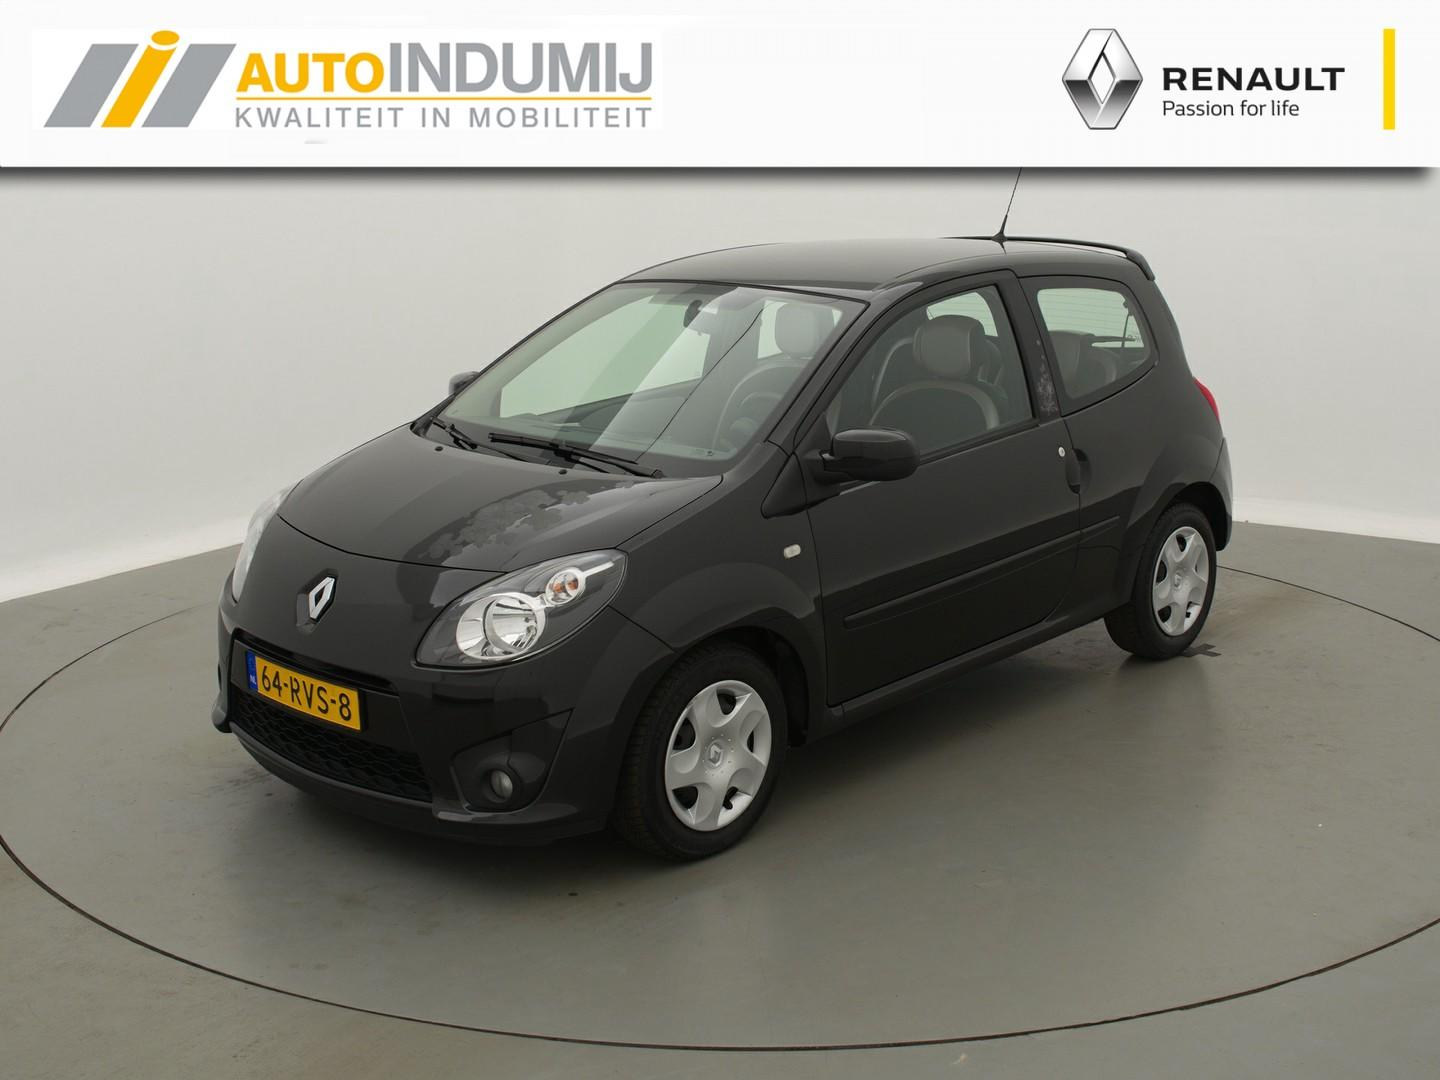 Renault Twingo 1.2-16v miss sixty / airco / losse stoelen achter!